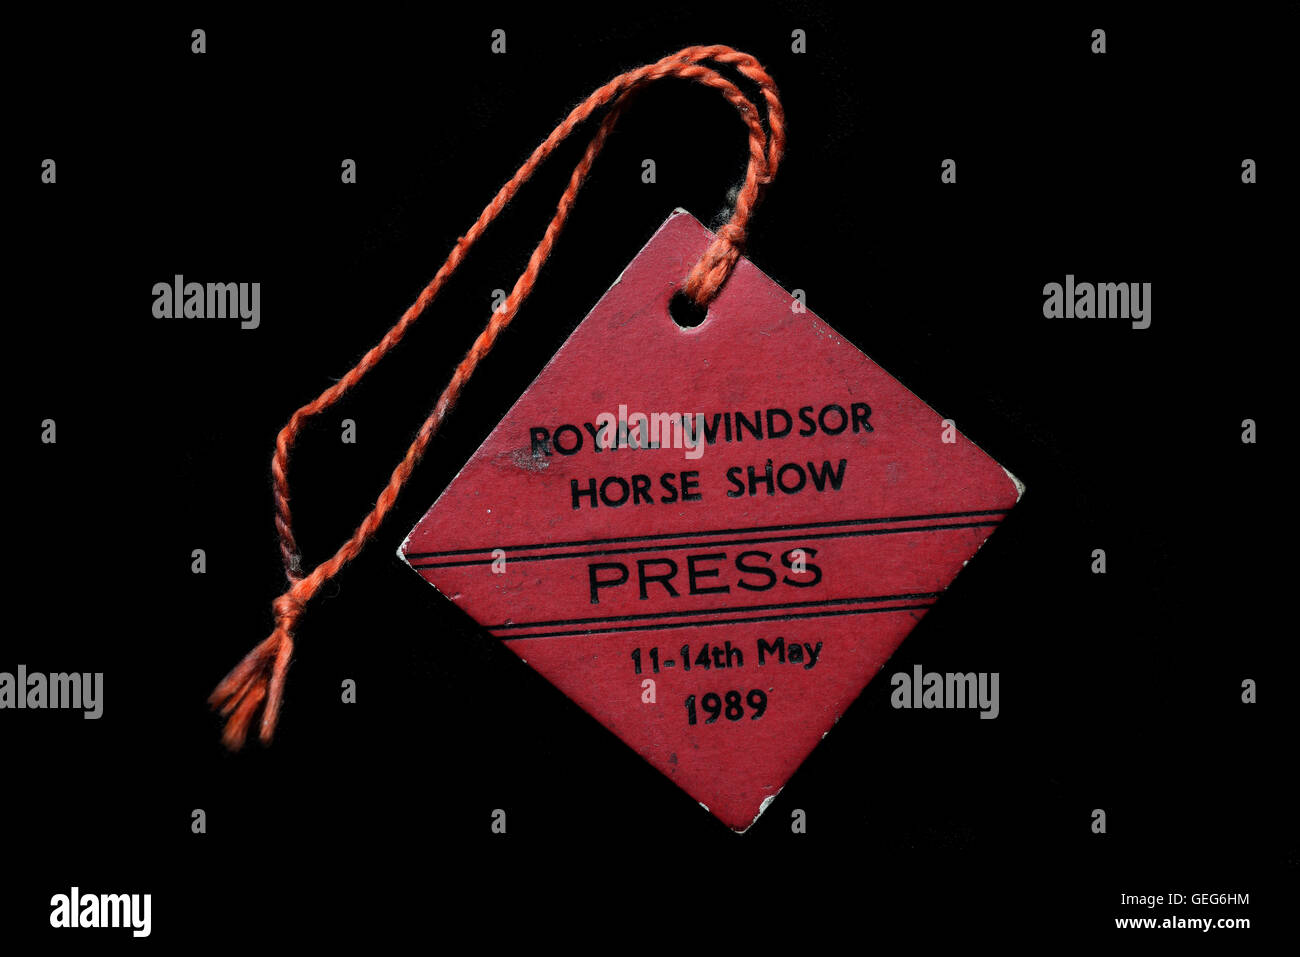 Royal Windsor Horse Show 11-14th May 1989 press card. - Stock Image